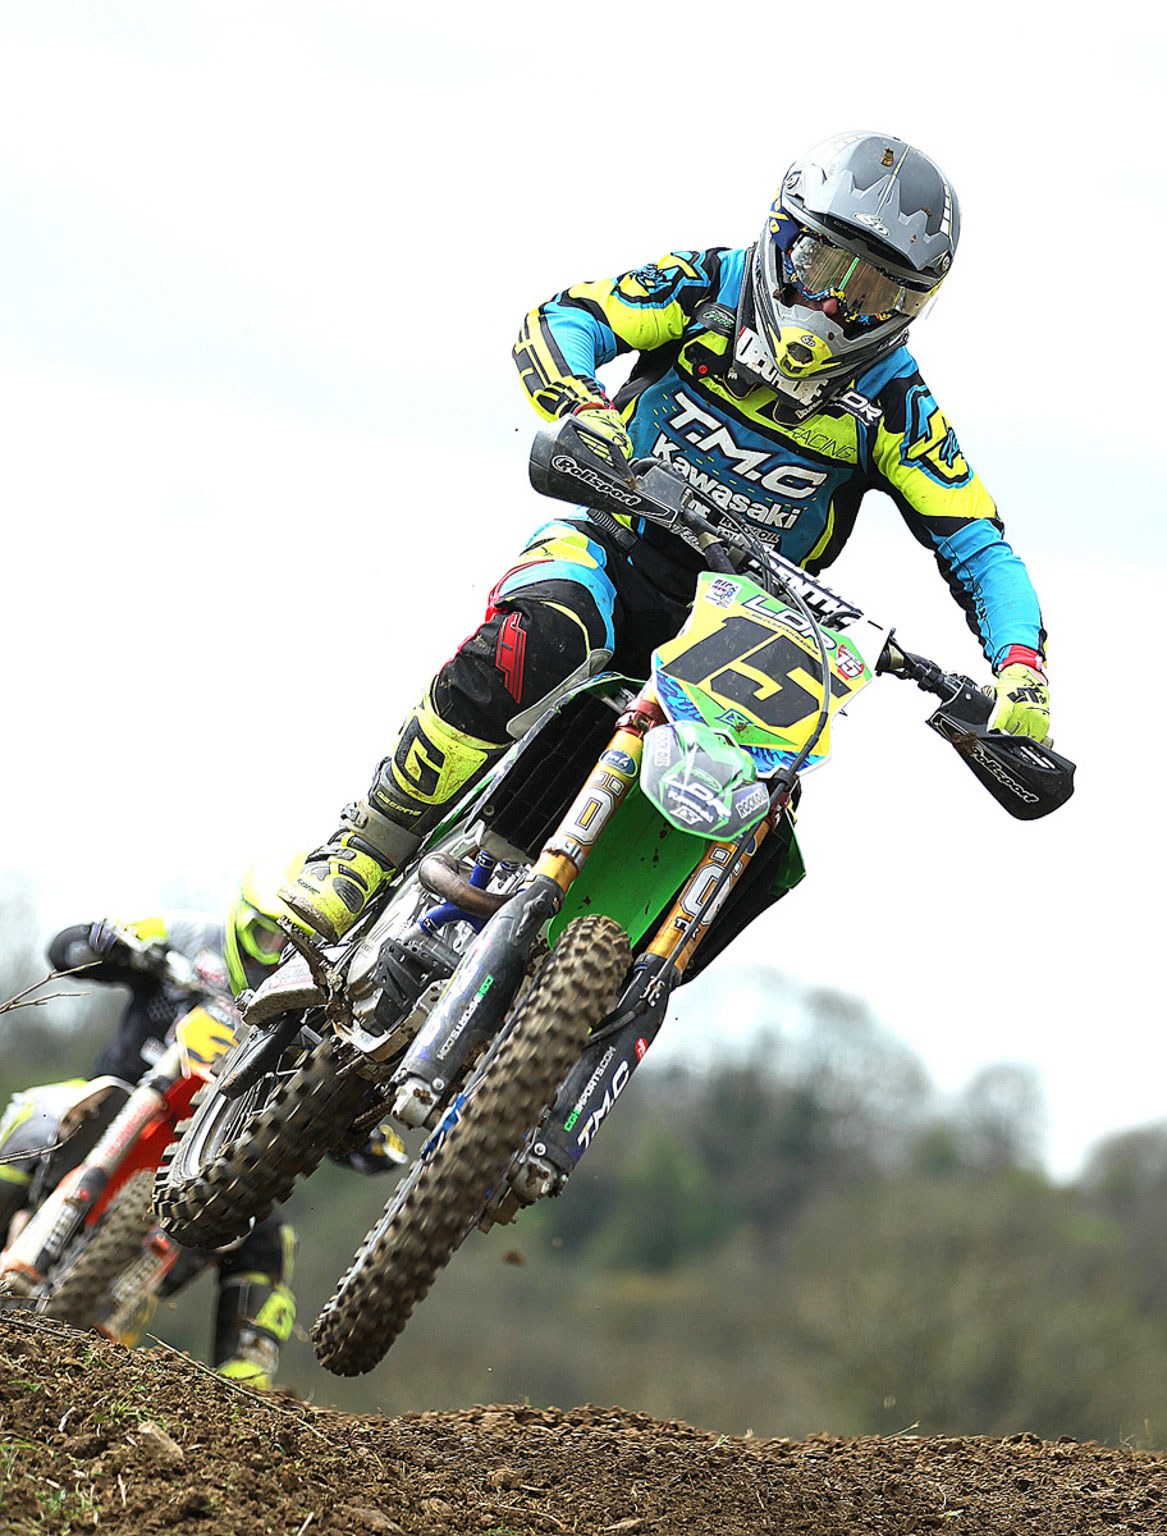 Paul Neale, 5th in MX1